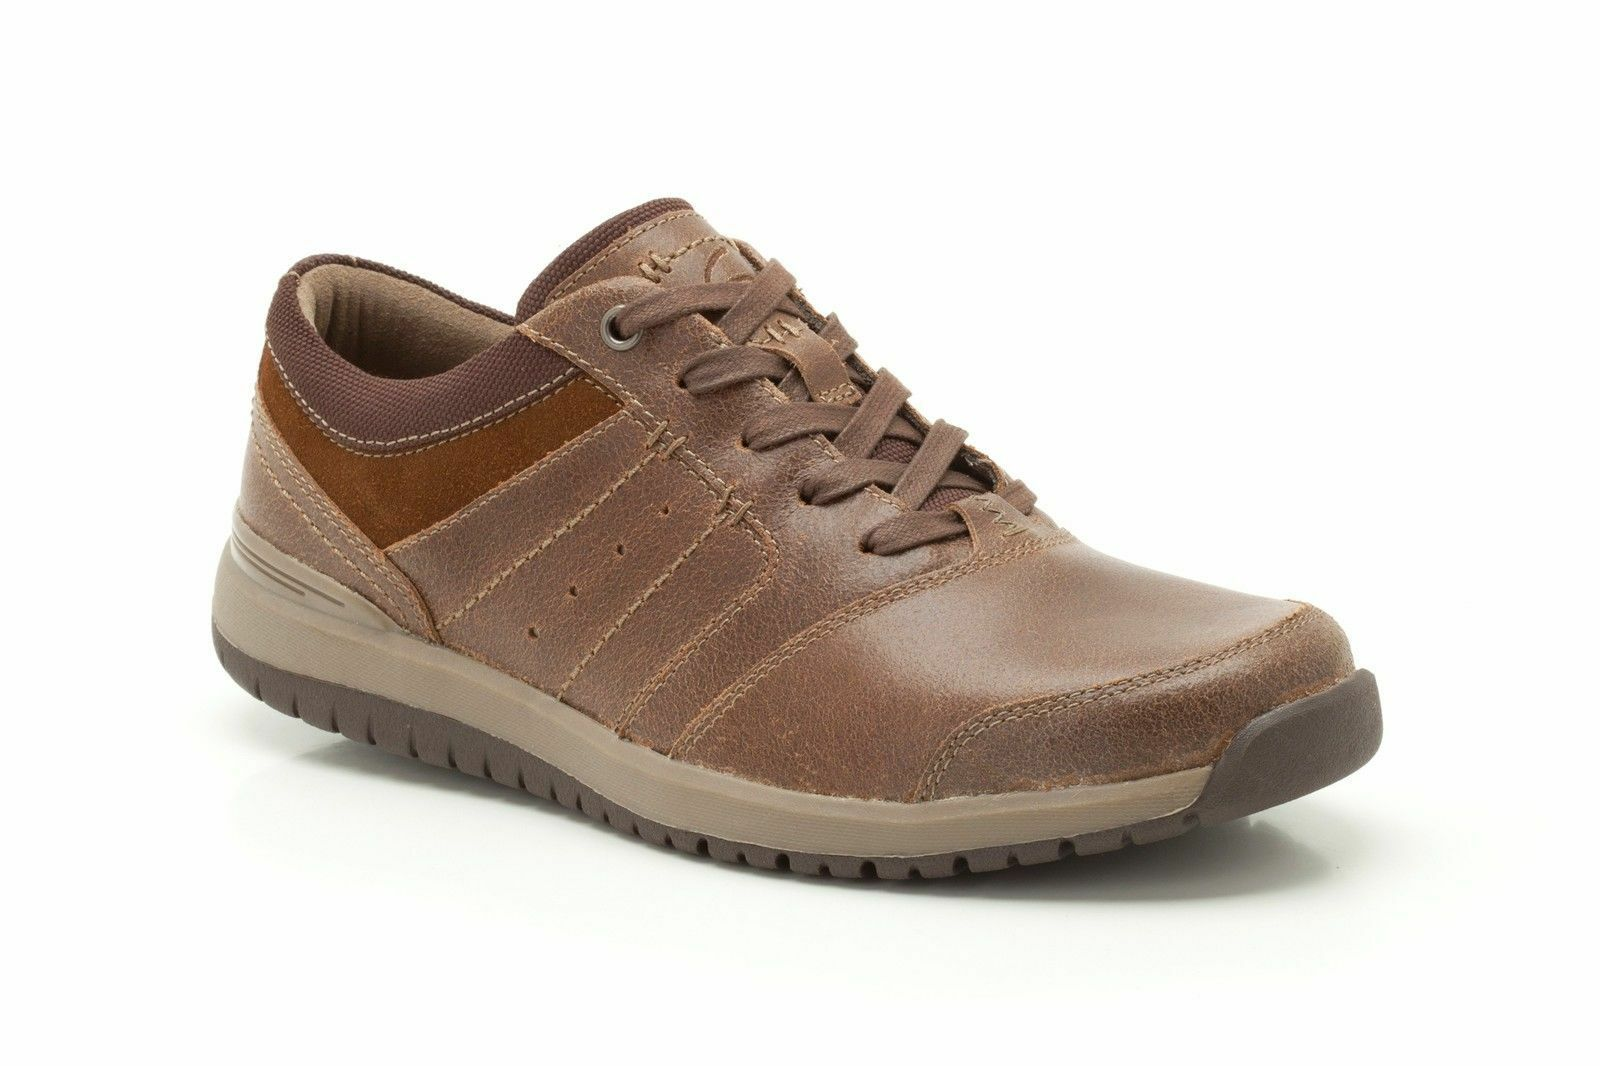 SALE Clarks 'Ryley Street' Men's Tan Leather Lace Up Casual shoes G Fit